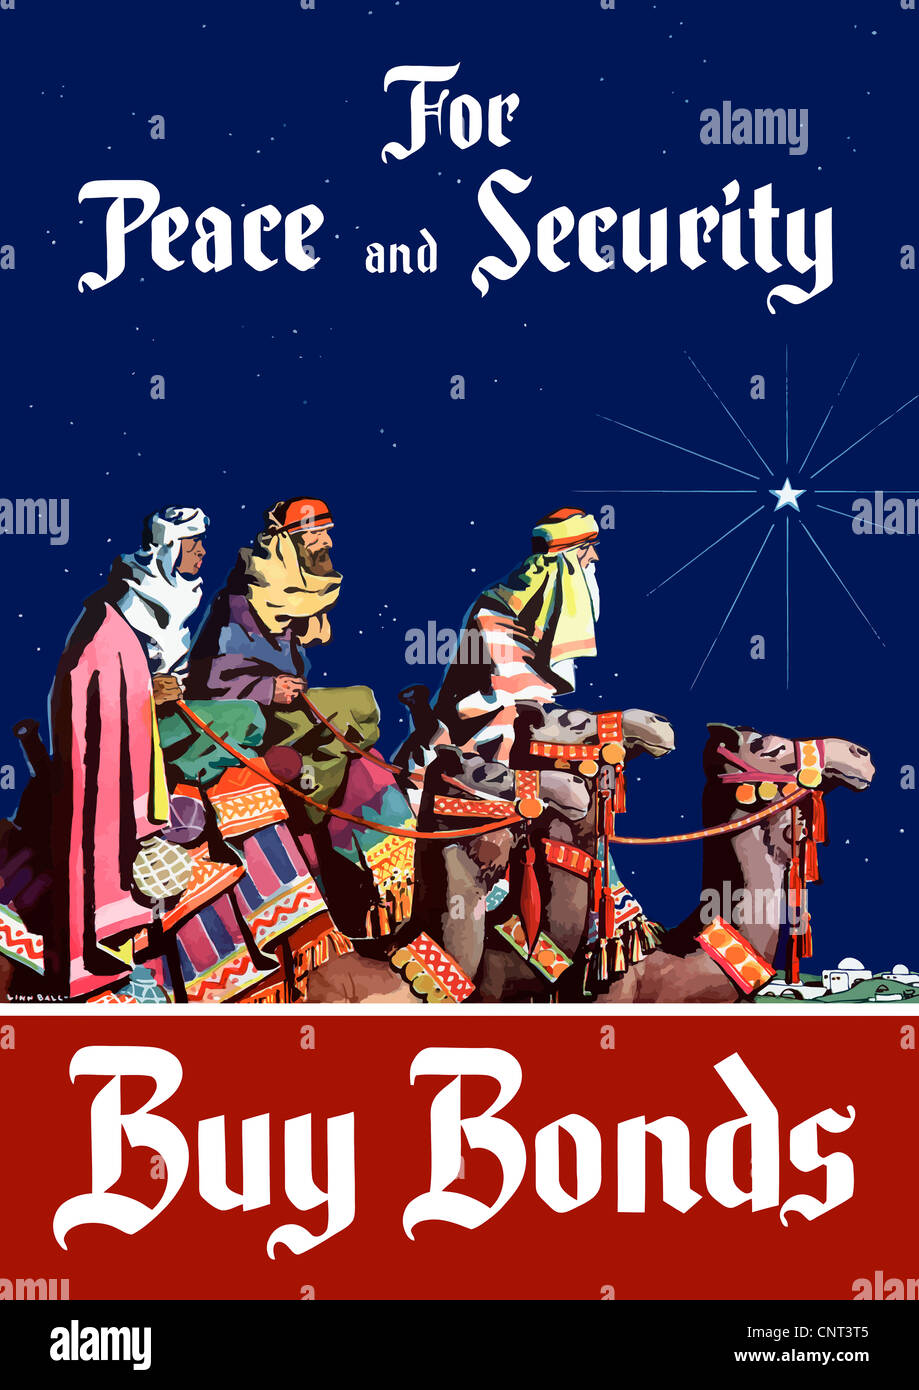 Ww2 Christmas Day.Vintage World War Ii Poster Featuring The Three Wise Men